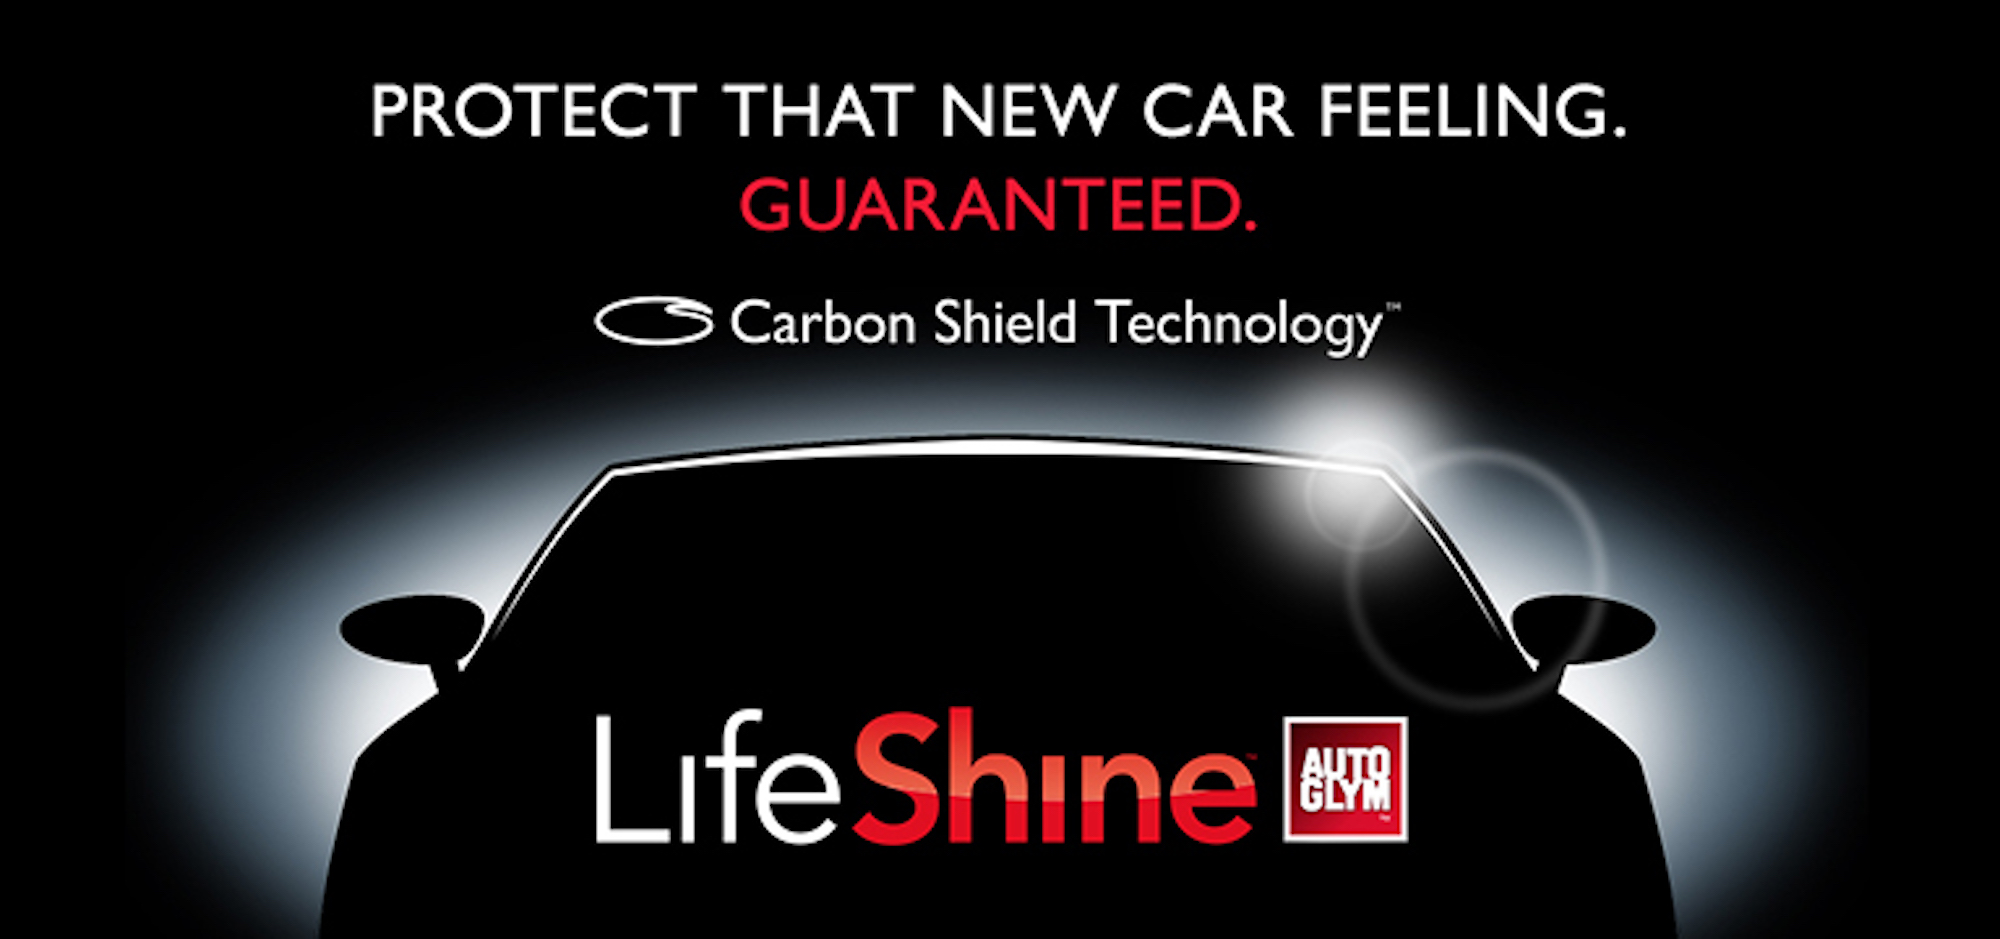 The Autoglym LifeShine system offers a unique and realistic opportunity to keep your car in top condition for the lifetime of your ownership. Contact mmvaleting for more details.